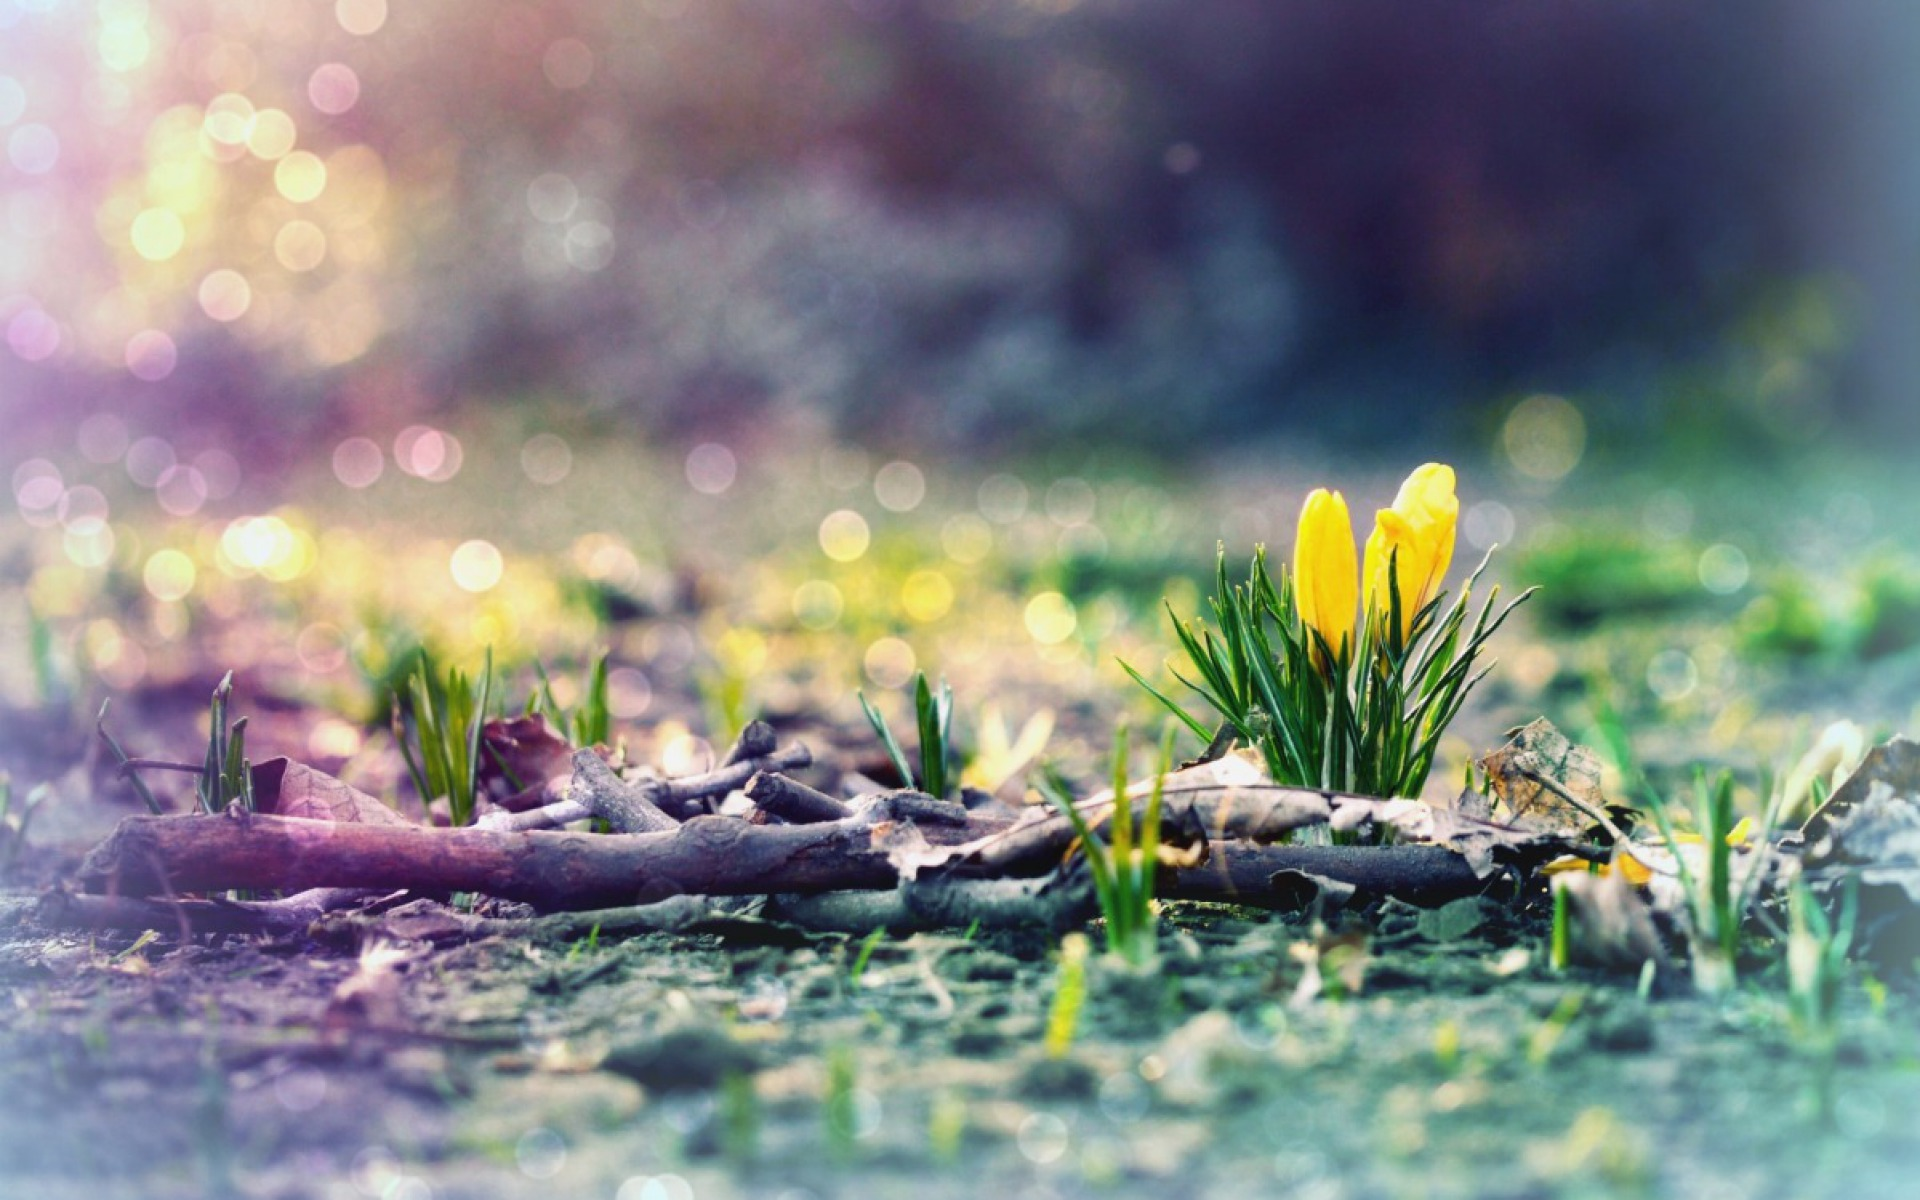 early spring images - HD1920×1200